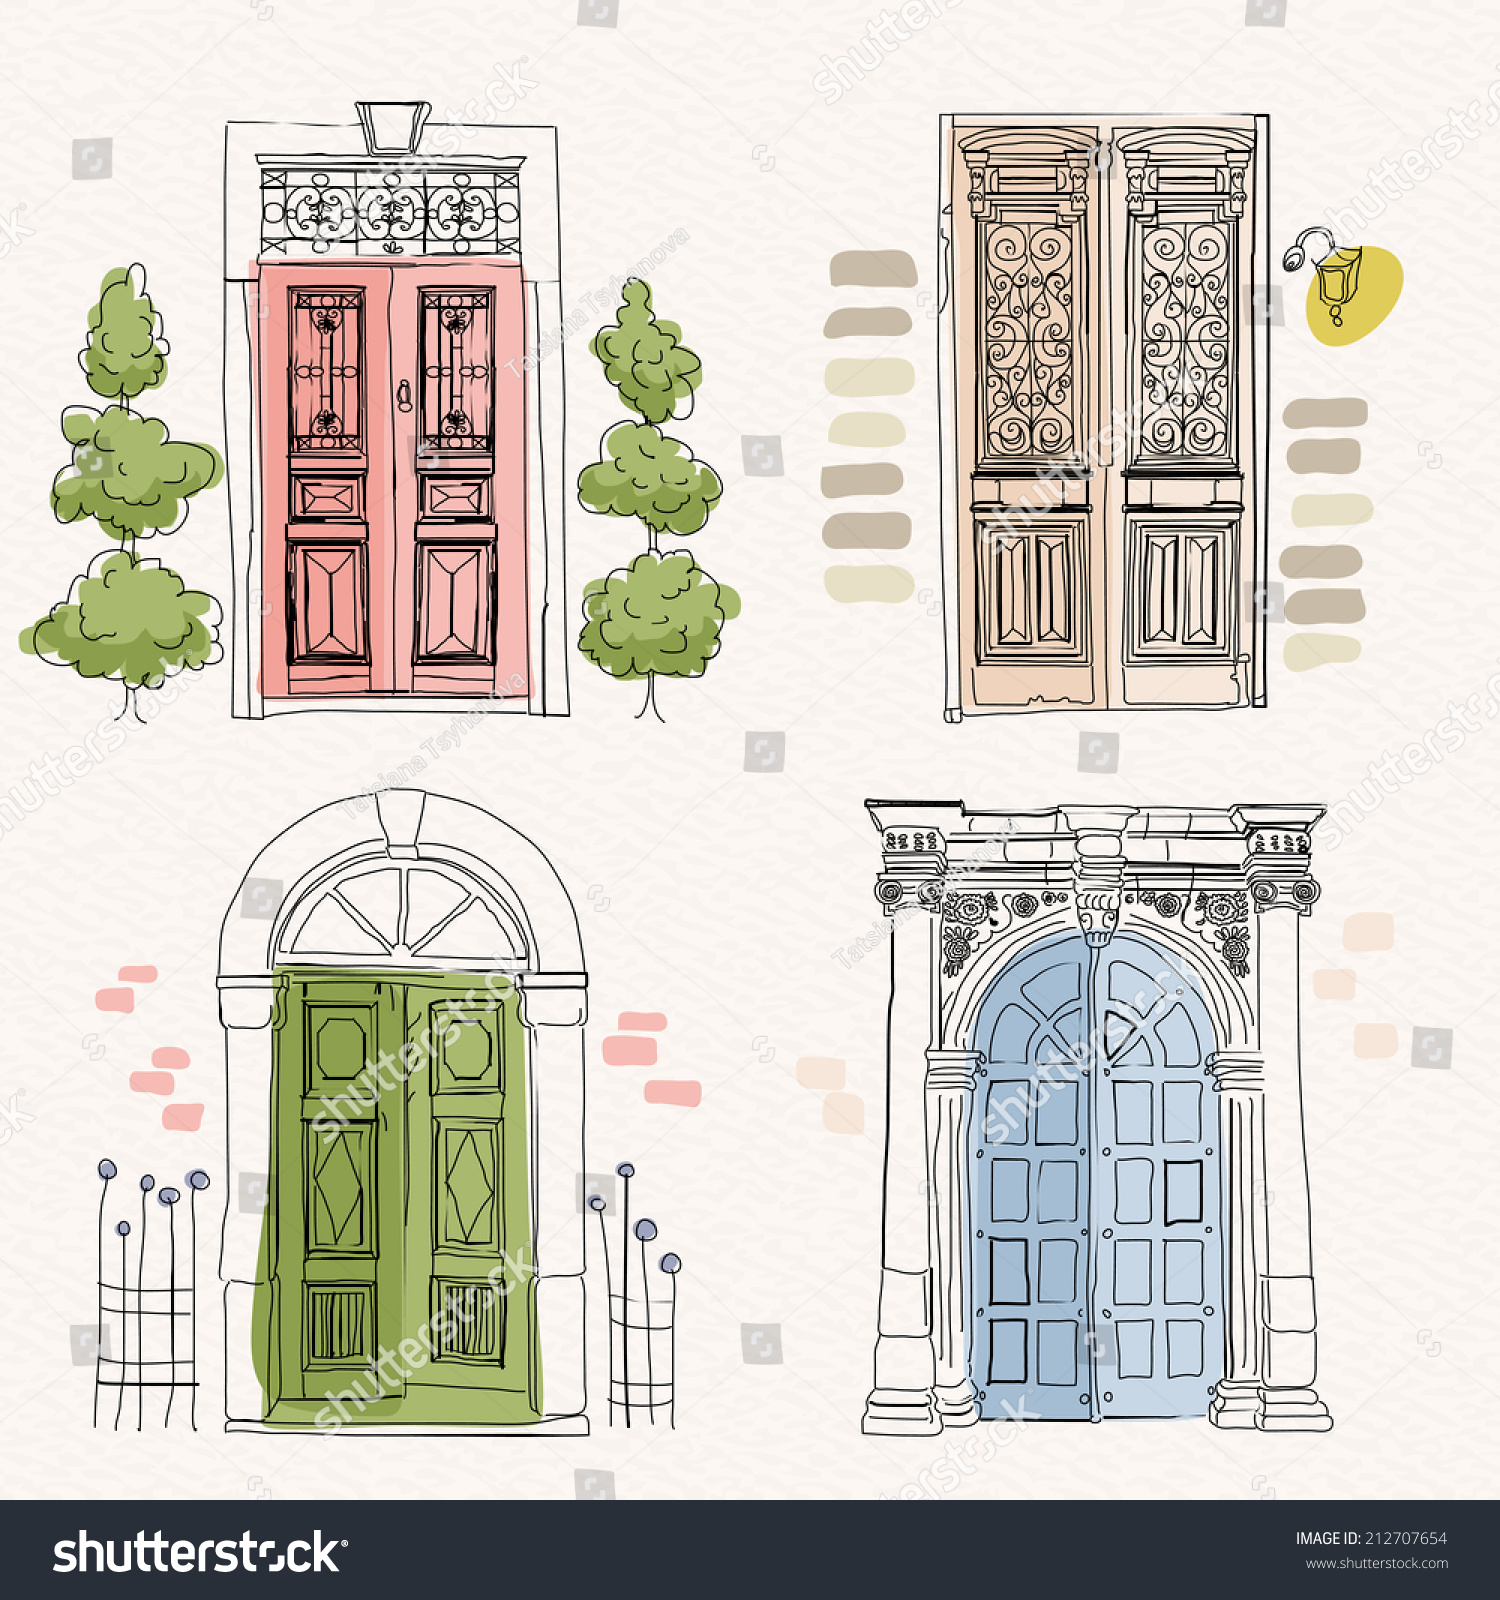 Old doors vintage style on watercolor stock vector for Window design sketch